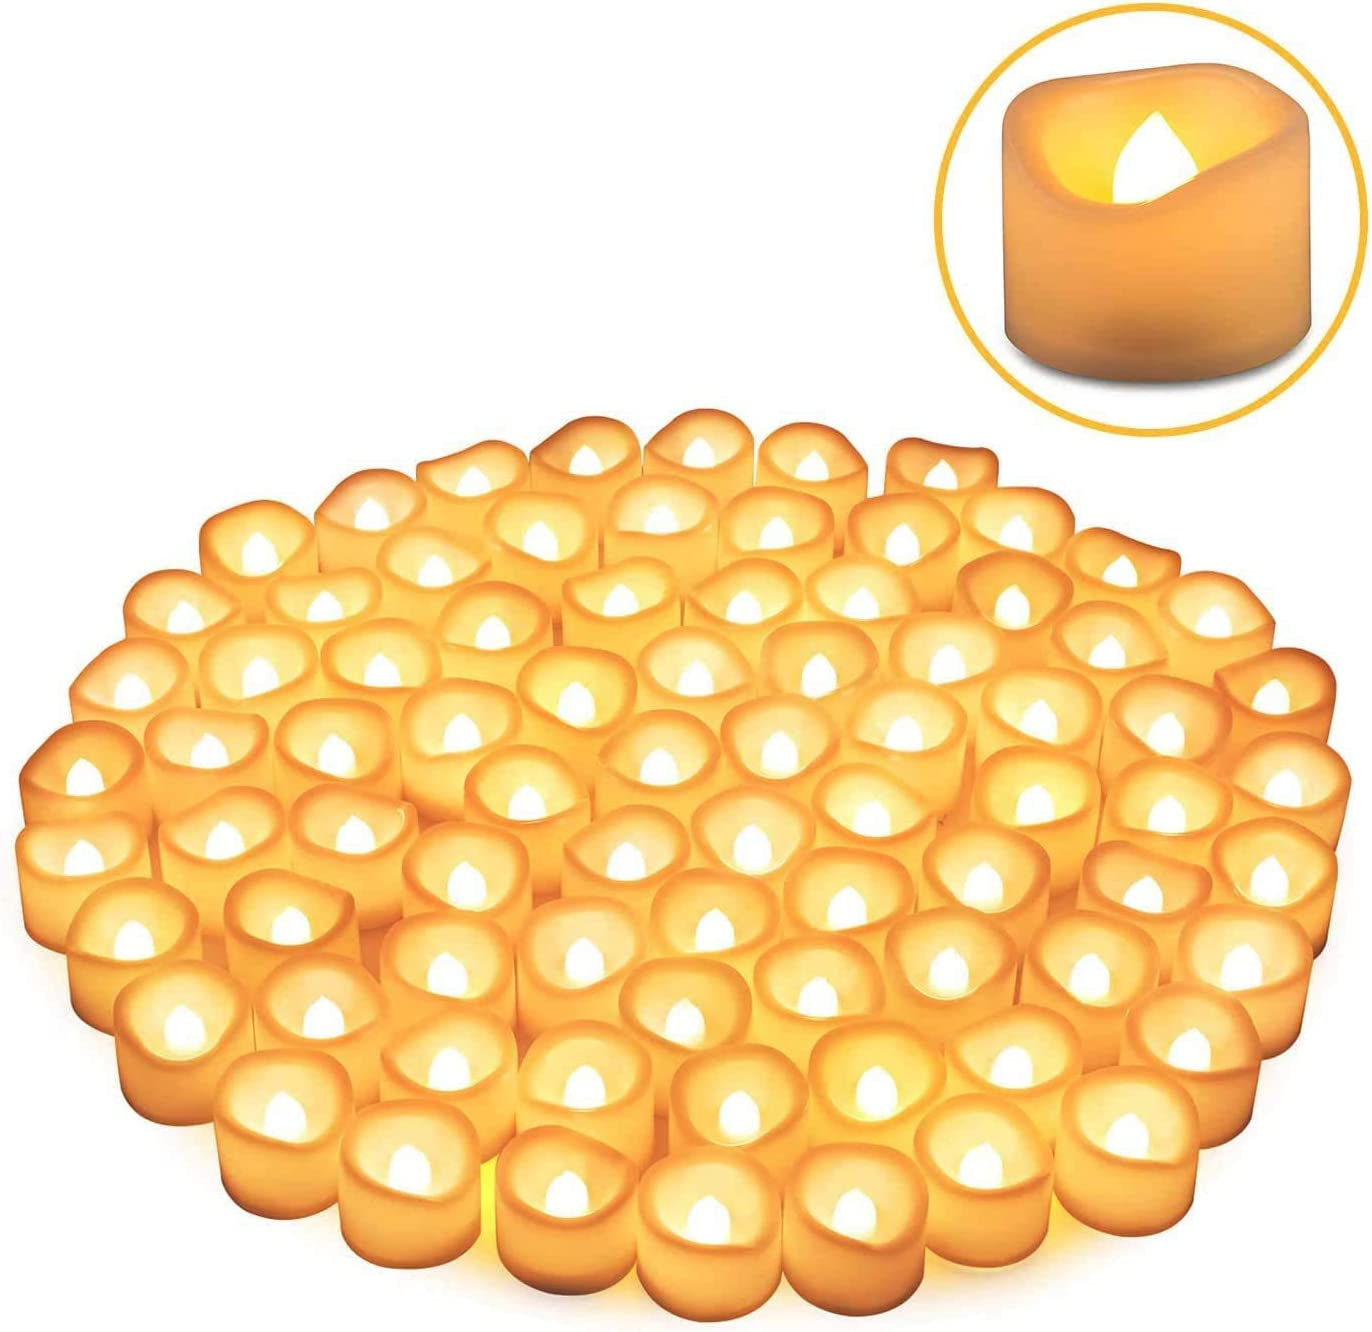 80 Packs LED Flameless Flickering Candles, Kohree Tea Lights Candles Battery Operated Votive Candles, Flickering Tealight Candles for Garden Wedding,Party, Christmas Decorations, Warm White